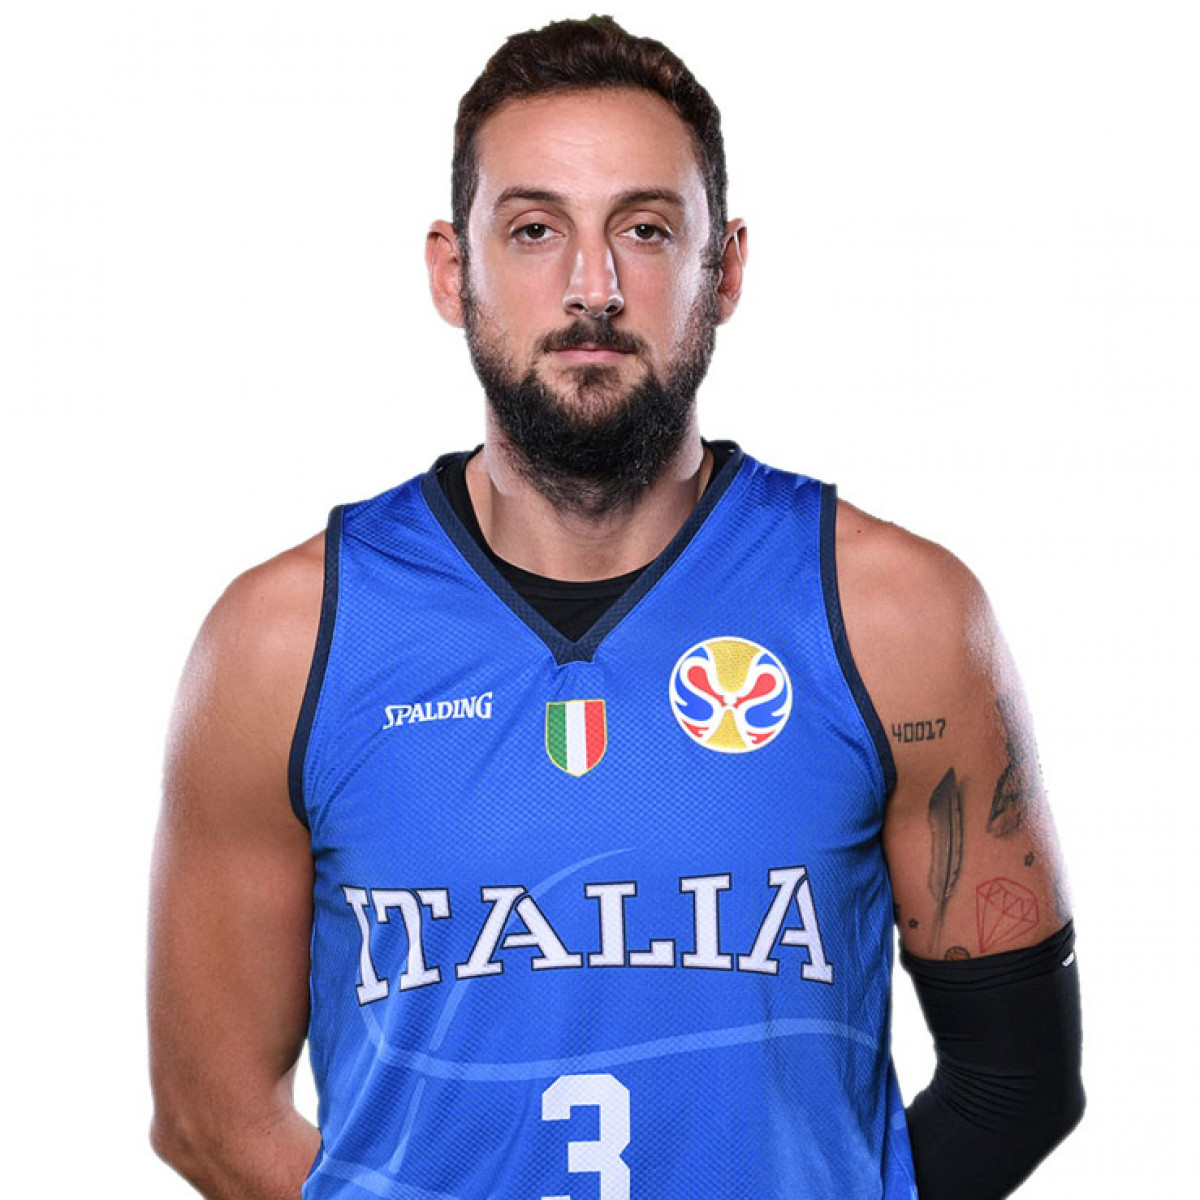 Photo of Marco Belinelli, 2019-2020 season